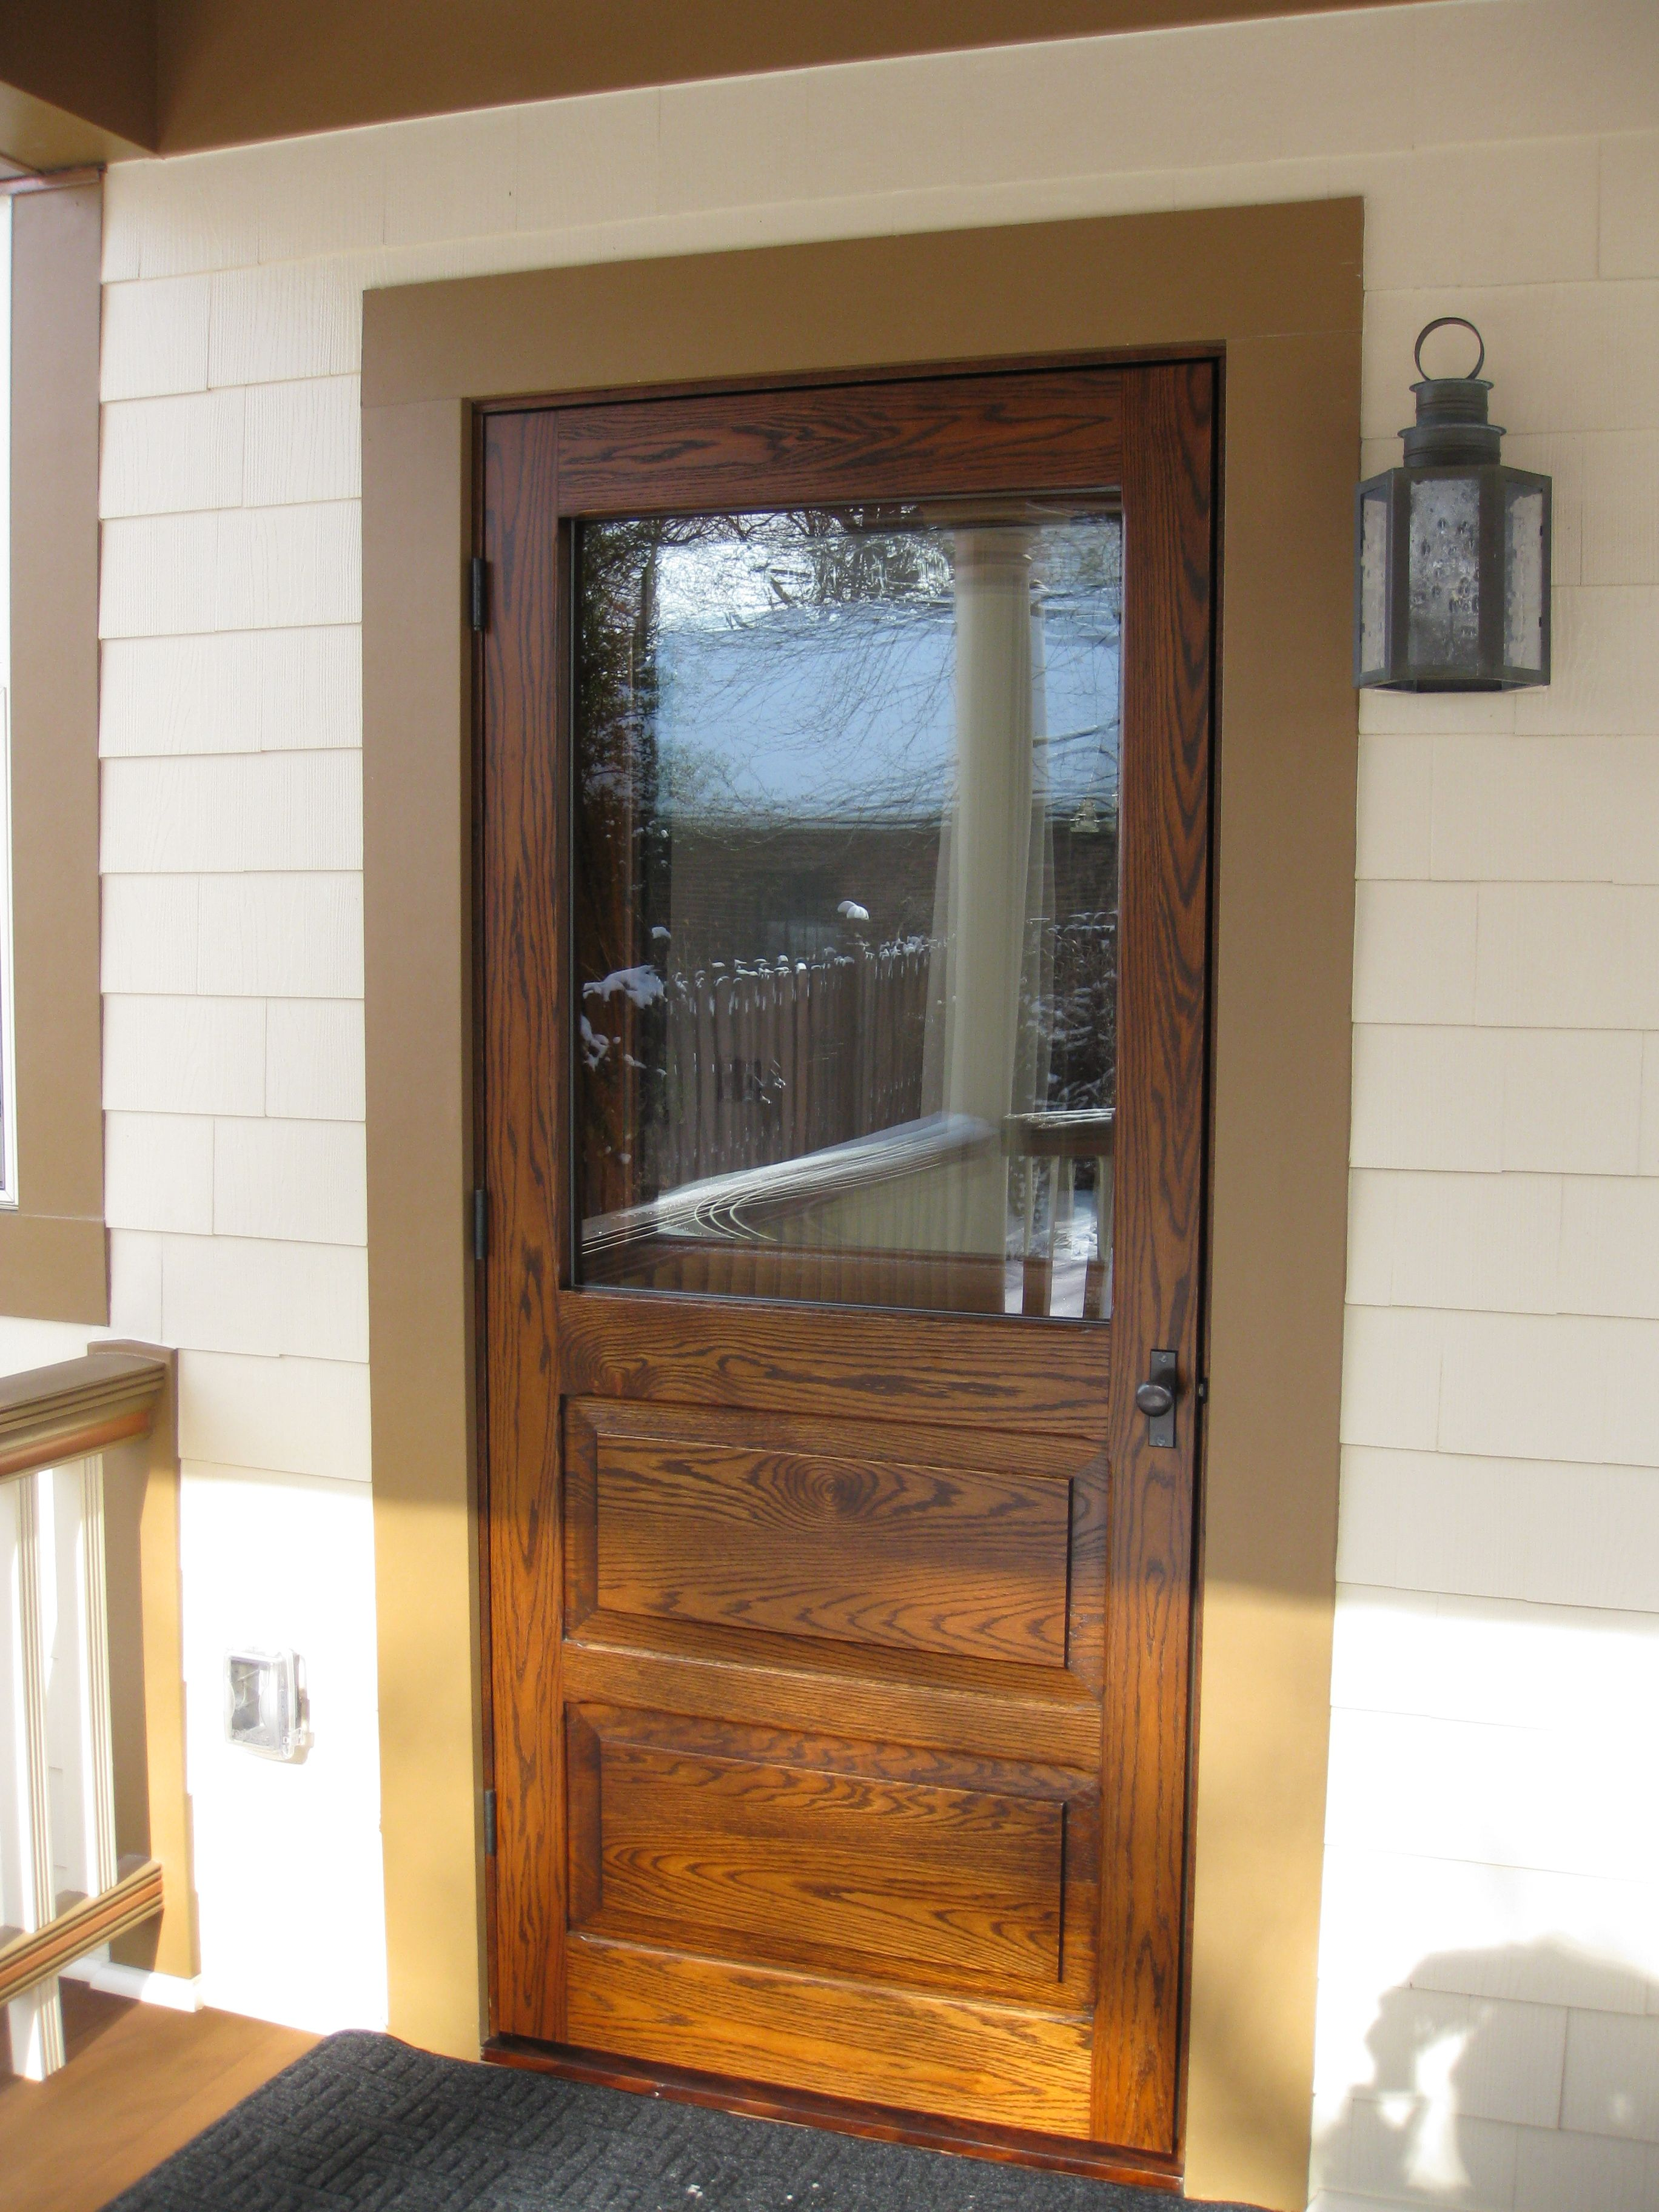 Traditional Screen Storm Door In Solid Red Oak With Oil Rubbed Bronze Hardware Www Vintagedoors Com Front Door Storm Door Farmhouse Style